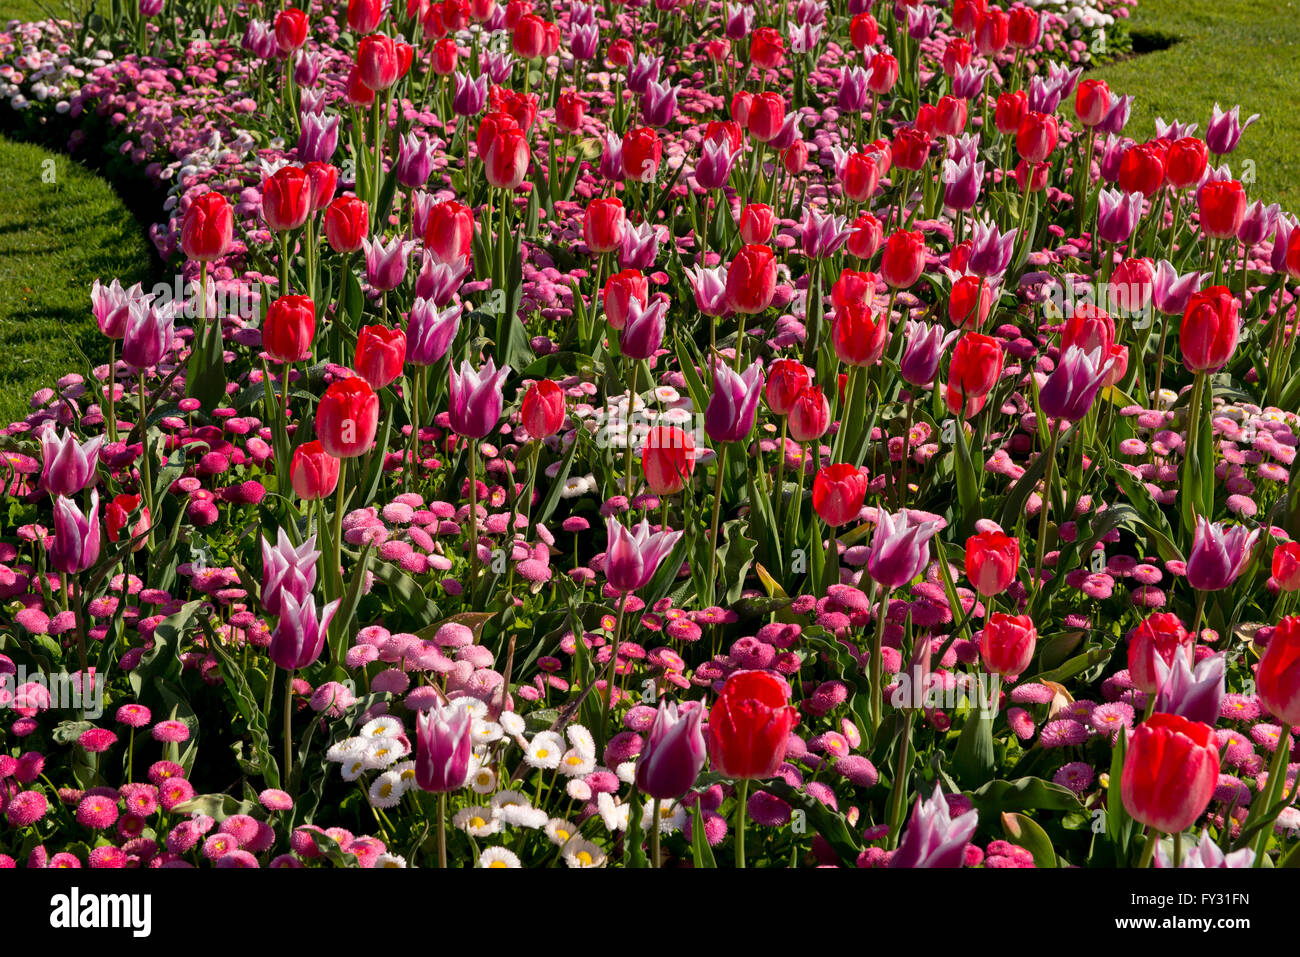 pink and red tulips in a bed at kew gardens, london, uk stock photo